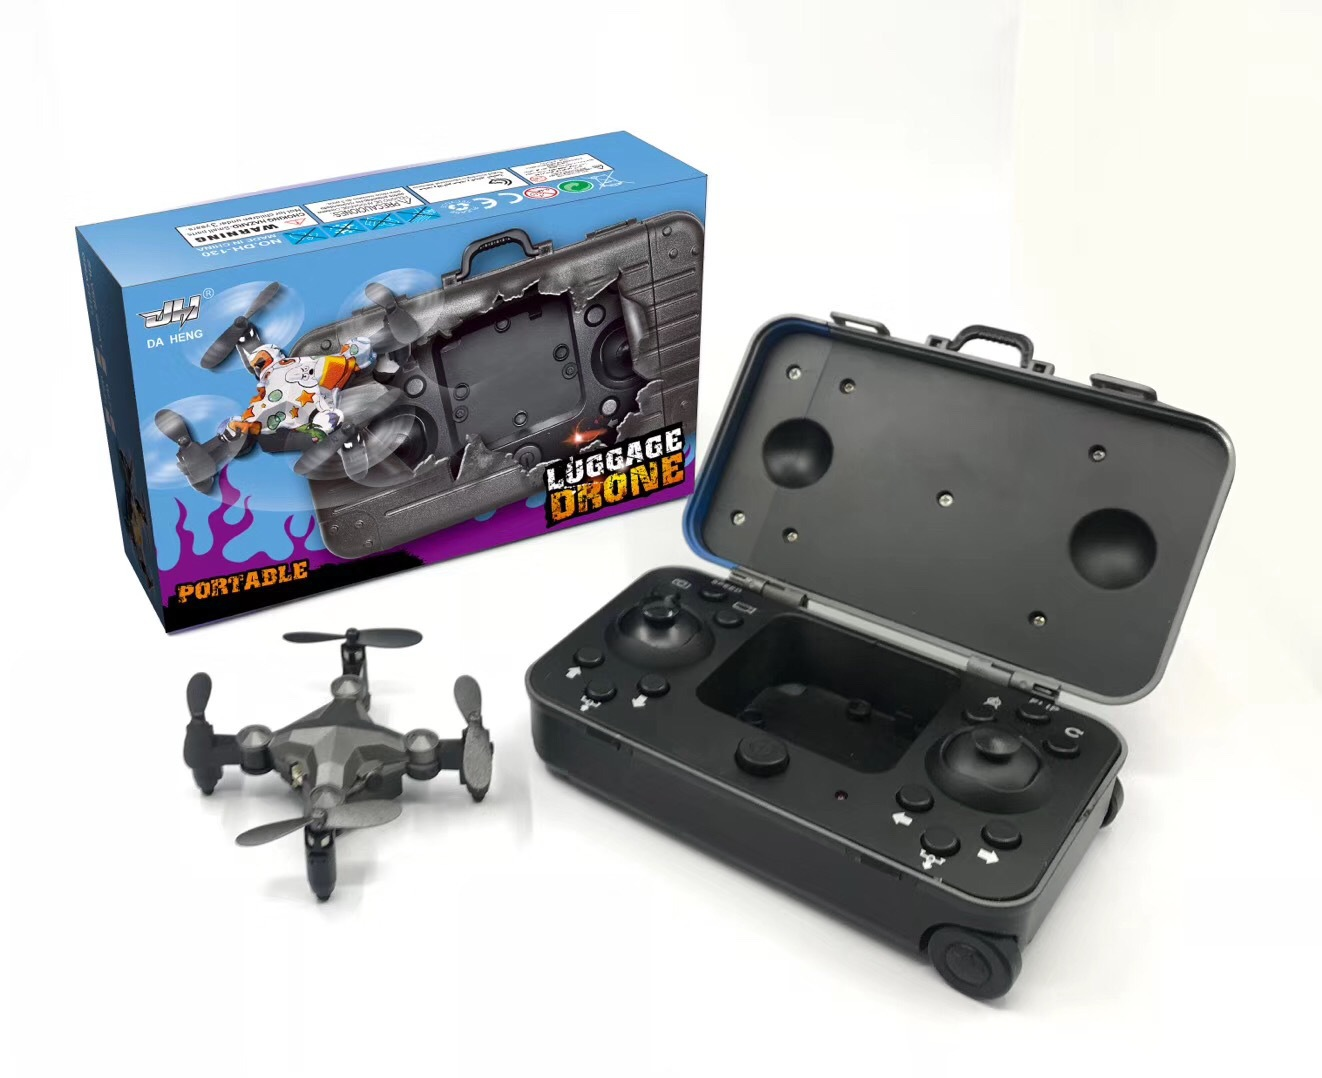 2.4G WIFI DH-120 Luggage drone mini folding quadcopter remote control altitude hold real-time transmission fpv 4-axis RC drone 2